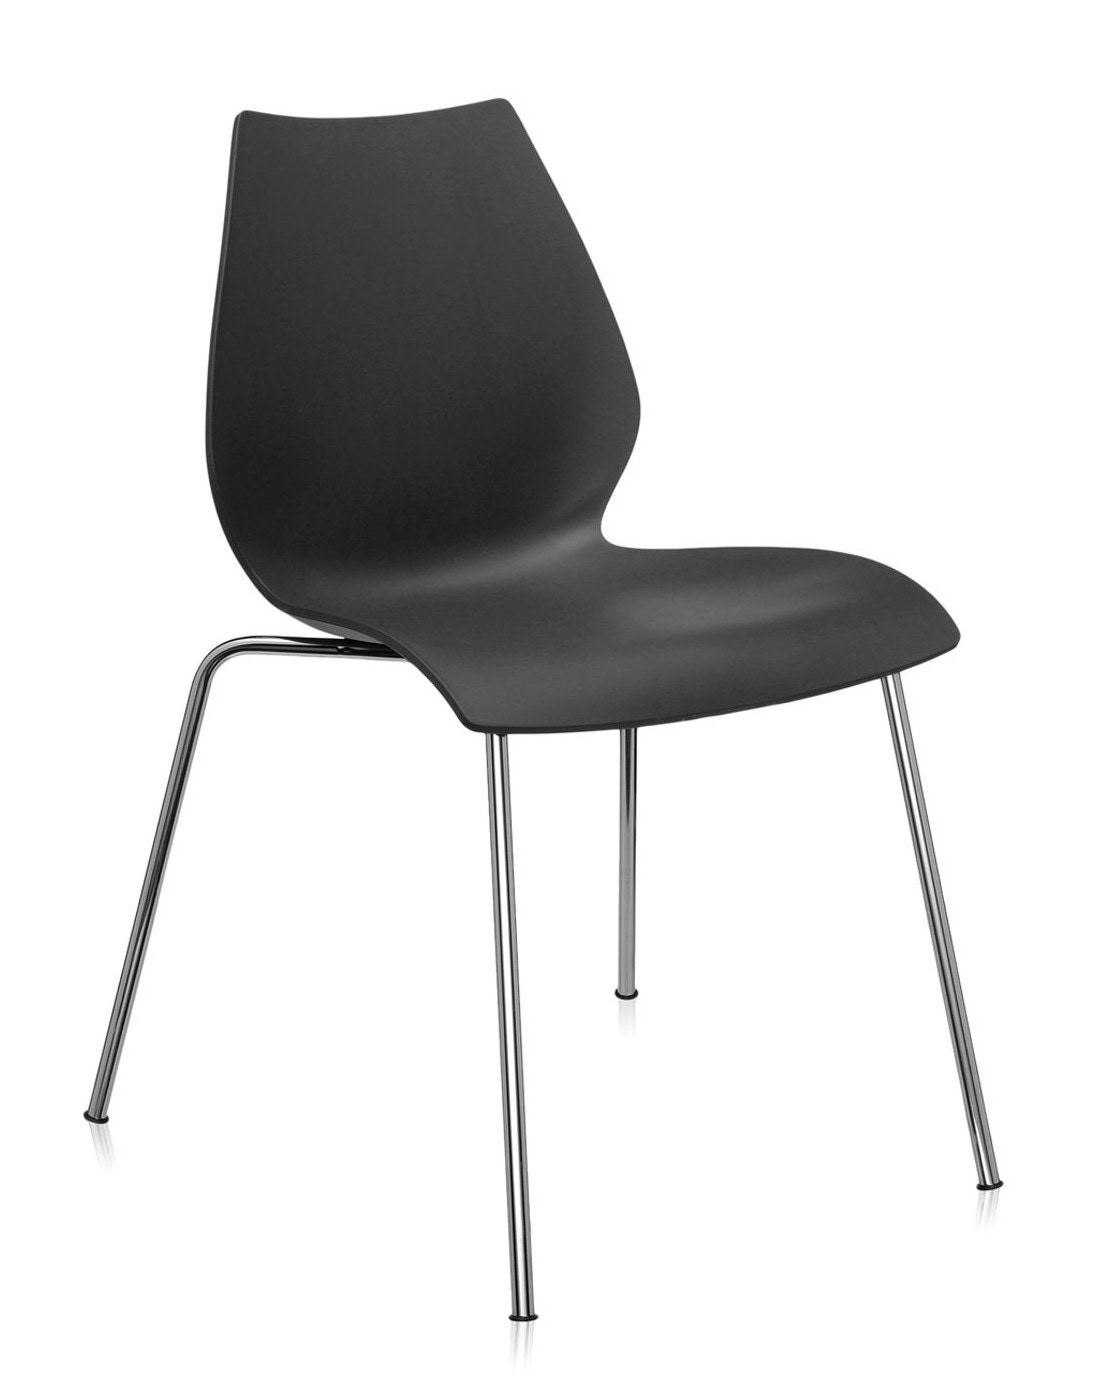 Kartell Maui Chair Armless (Priced Each, Sold in Sets of 2)